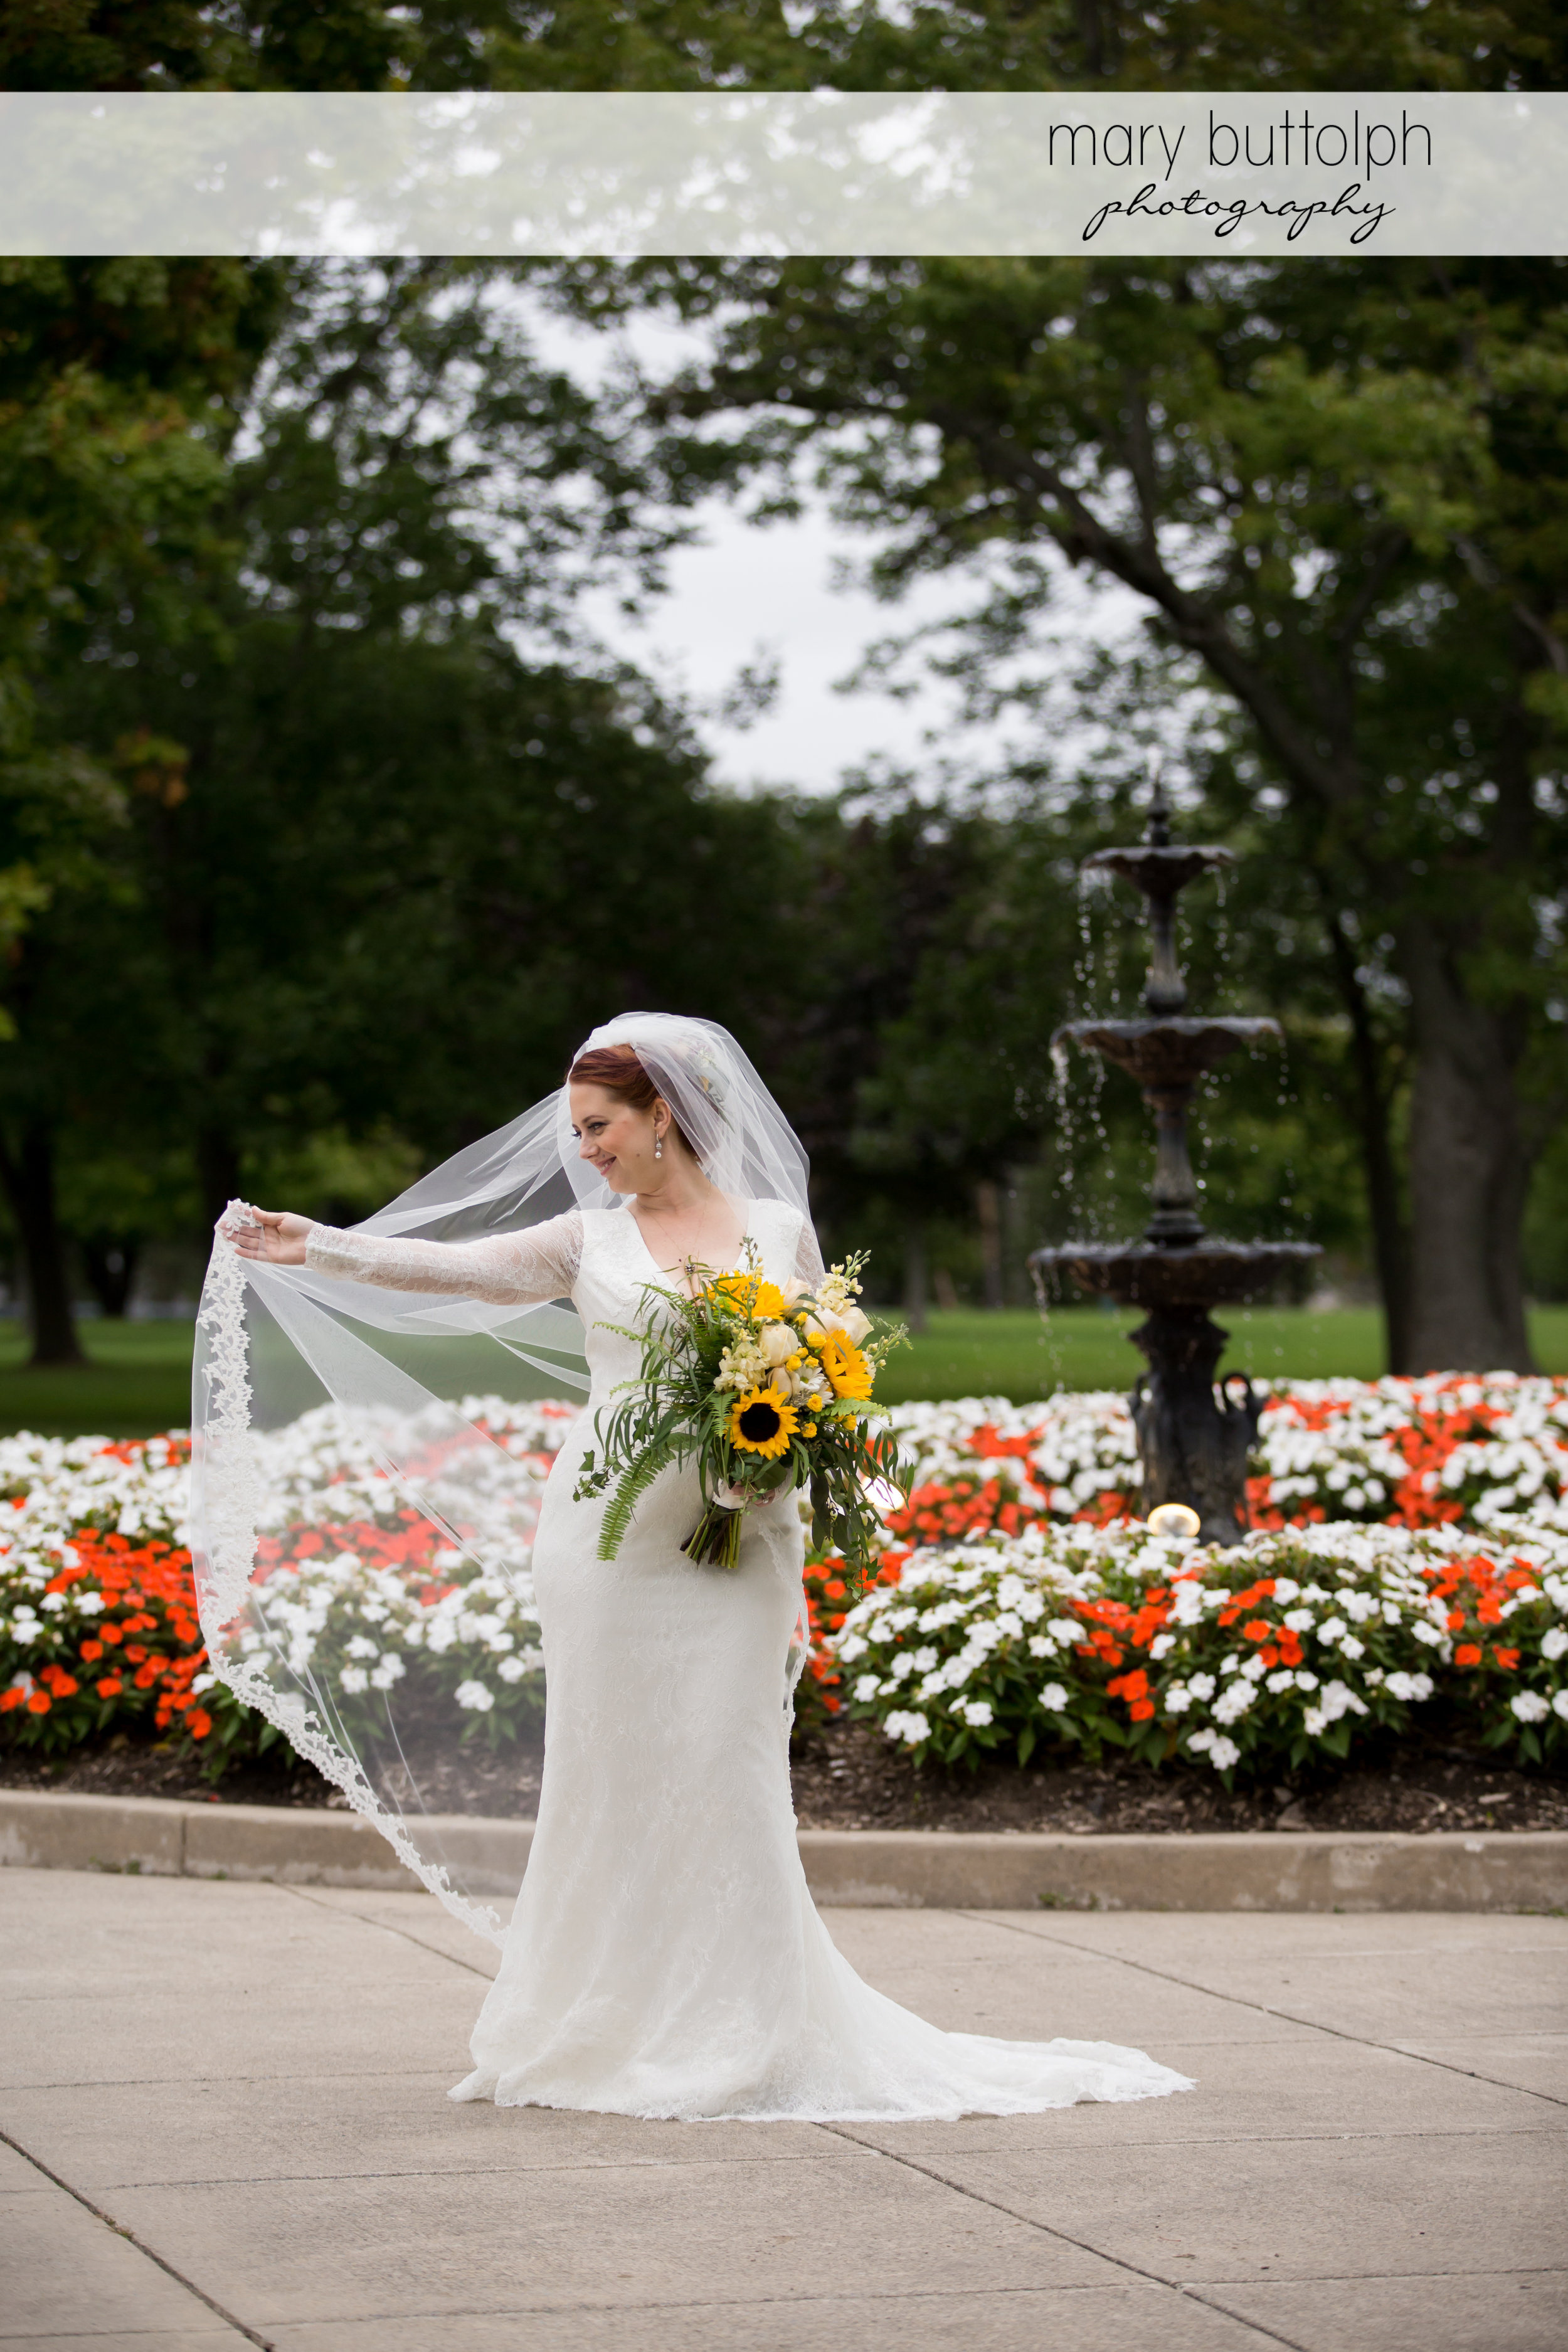 Bride shows off her wedding dress in the garden at Emerson Park Pavilion Wedding